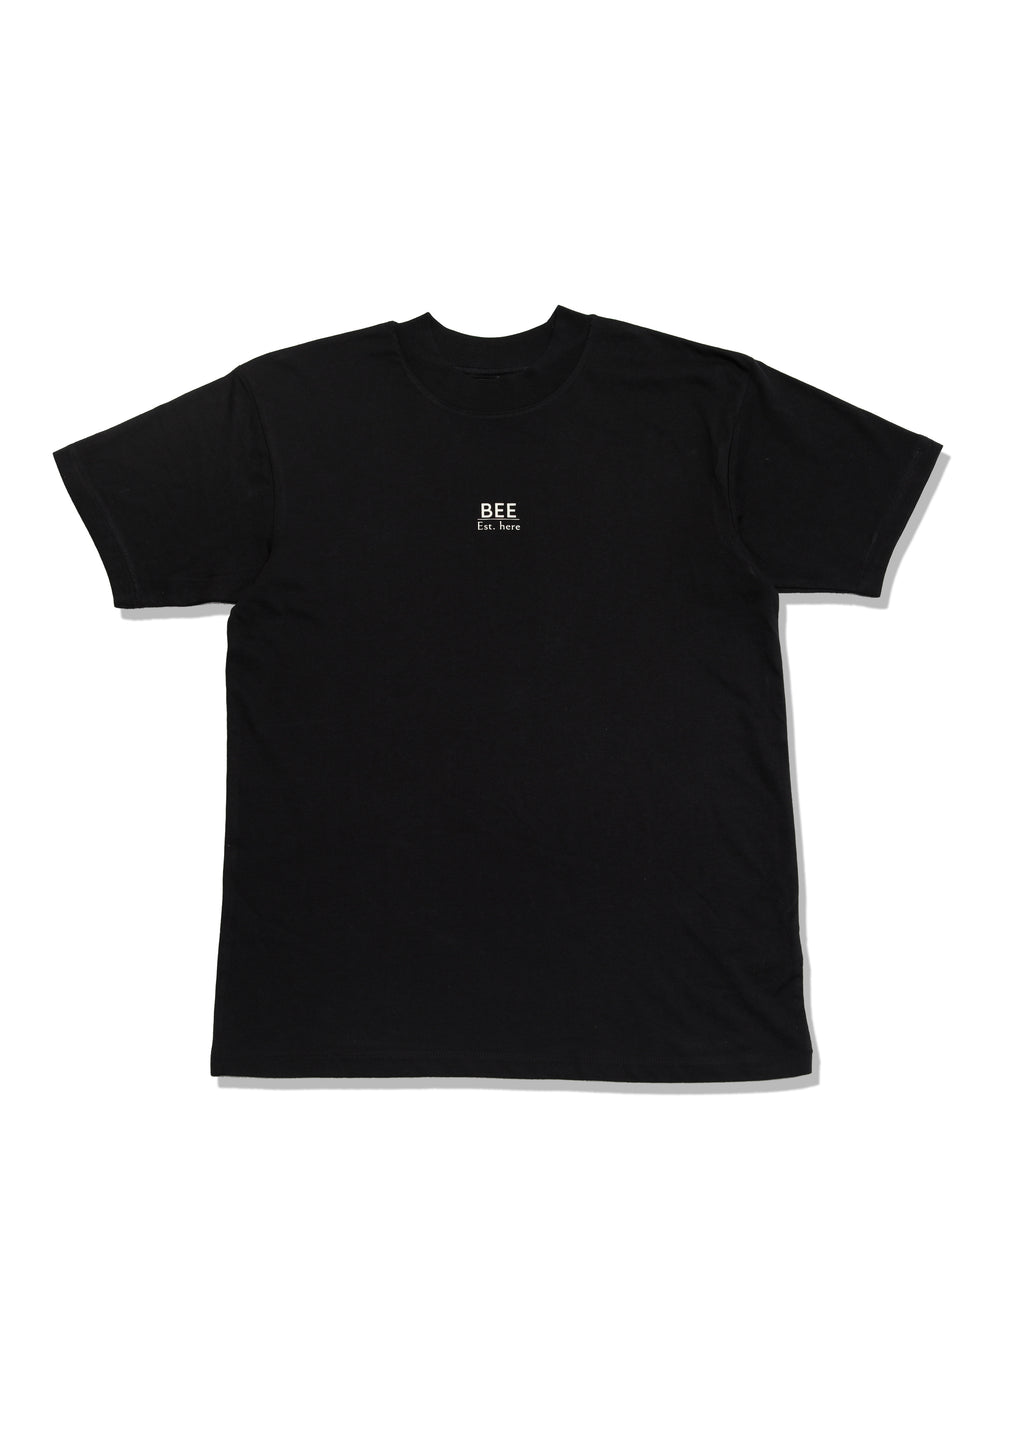 BEE Short Sleeve T-shirt -  Black